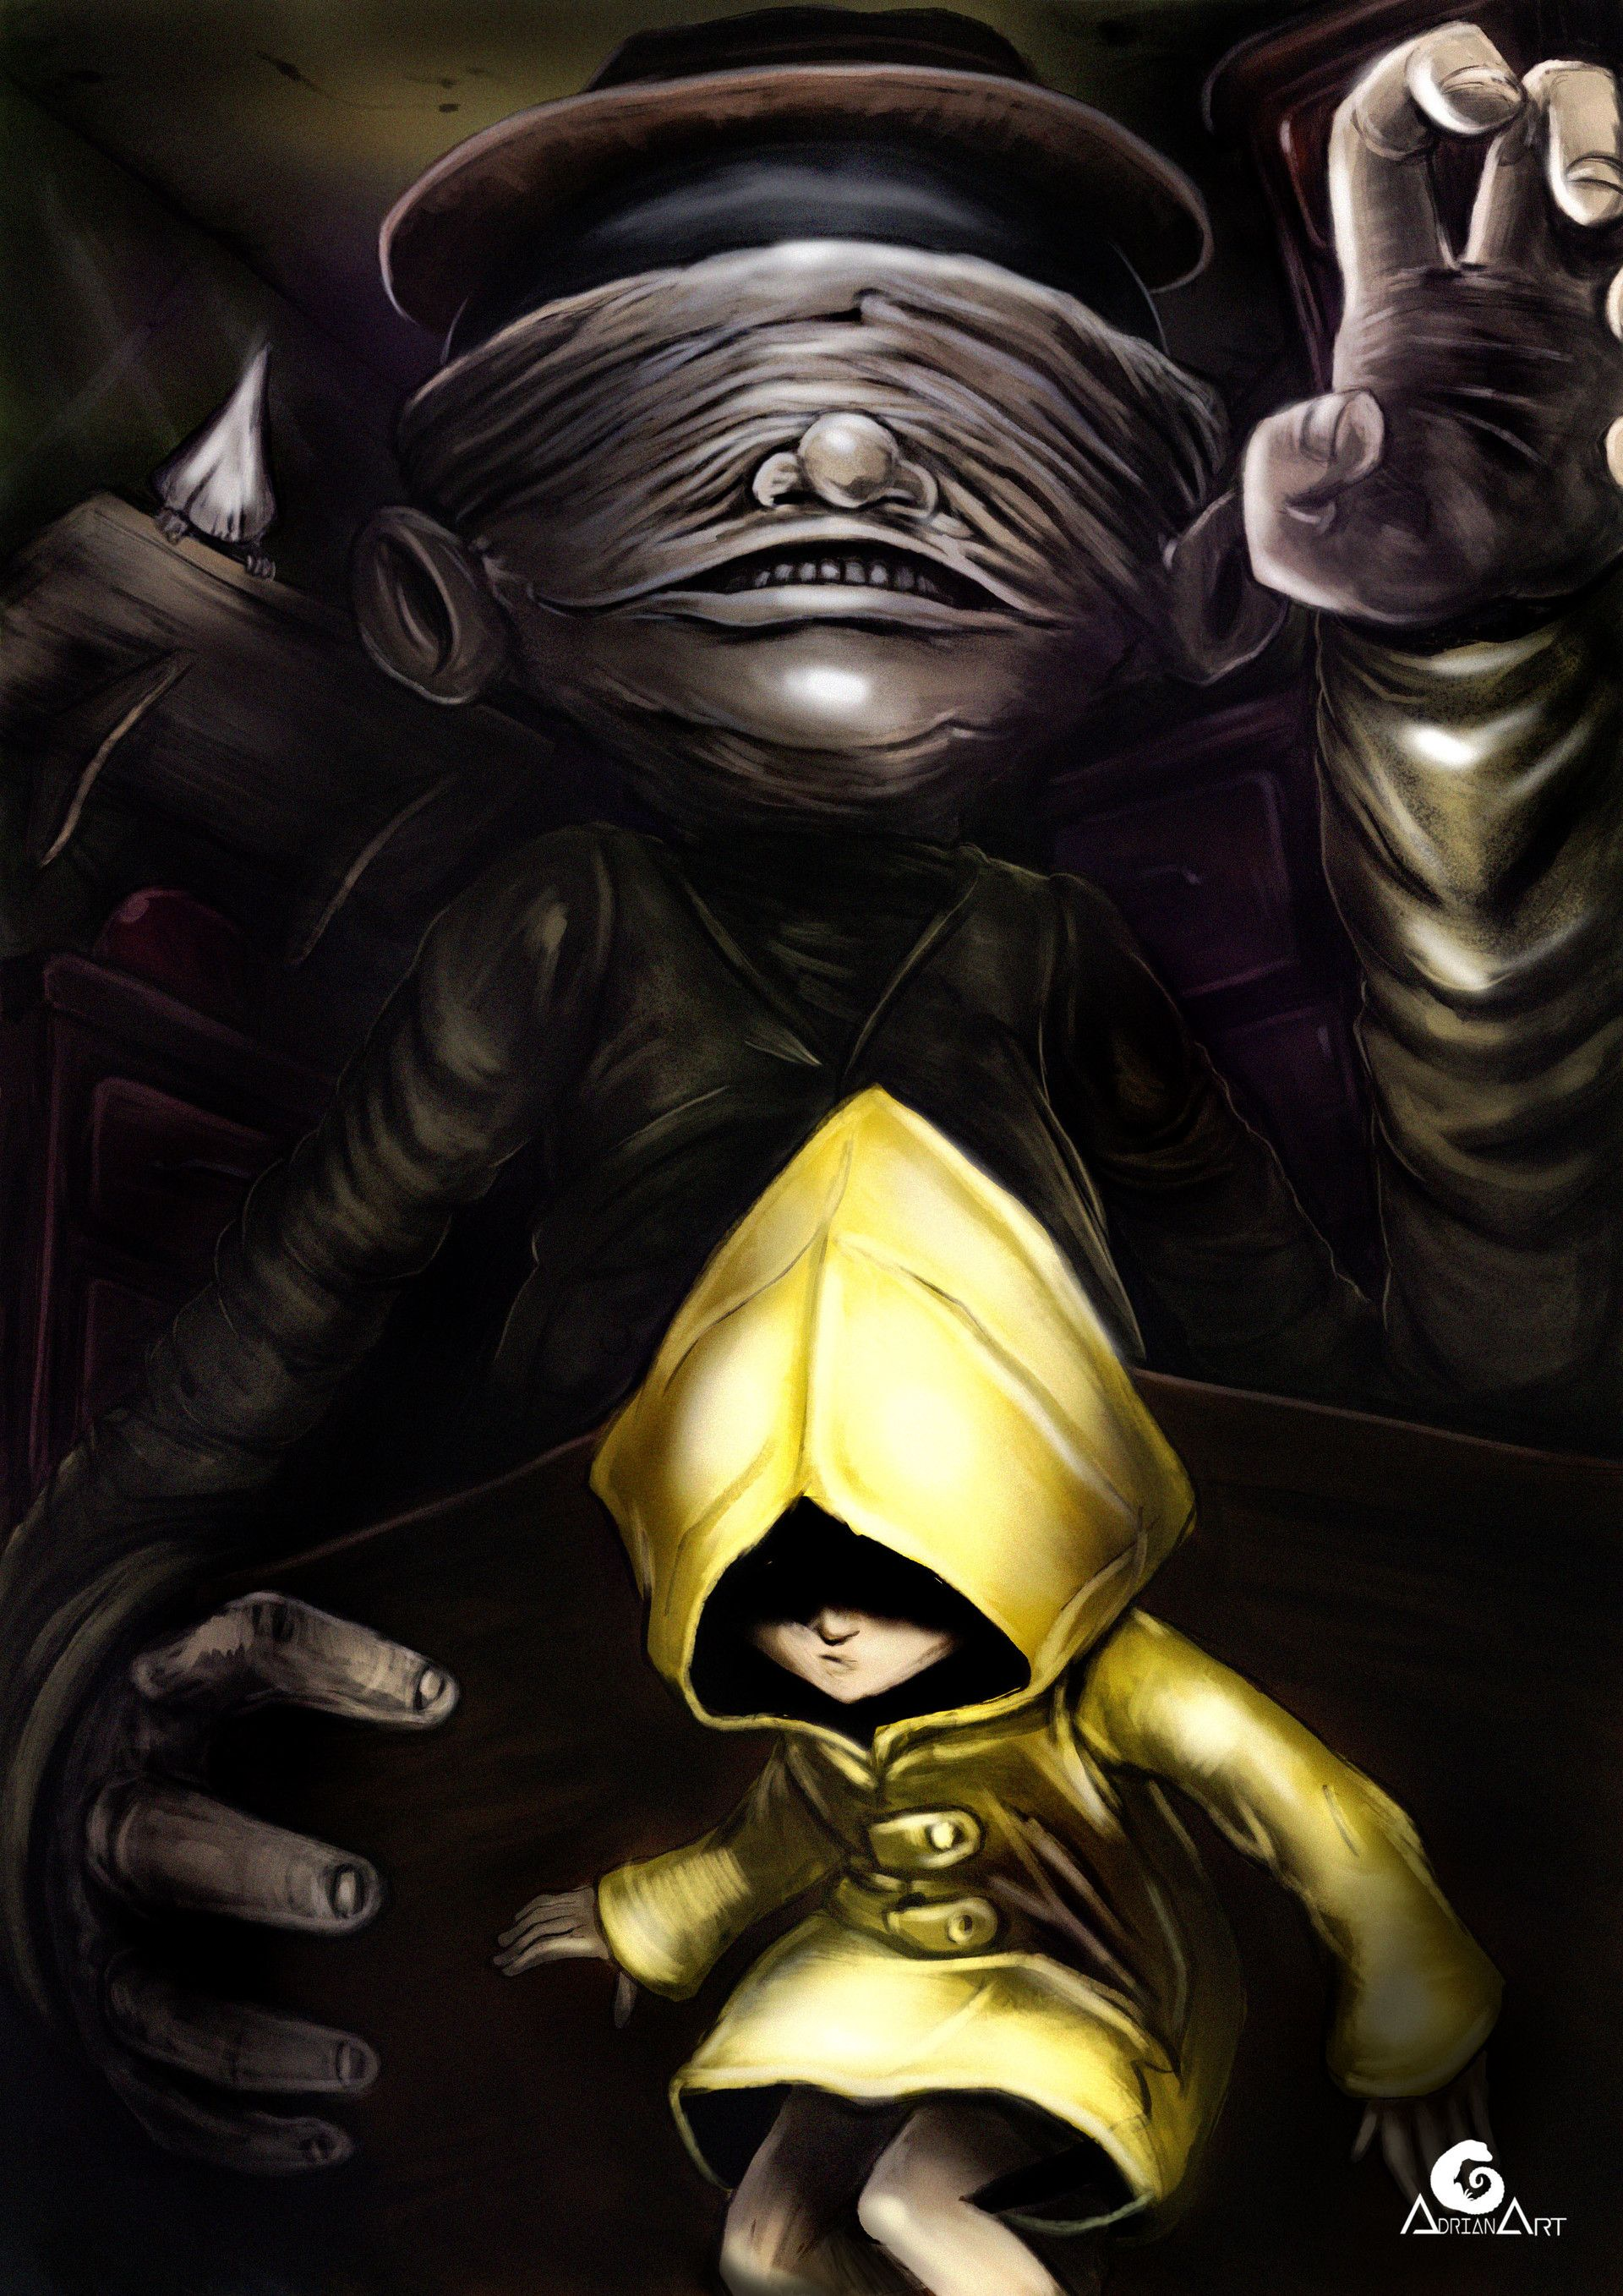 ArtStation - Little Nightmares, Six and the Janitor, Adrian